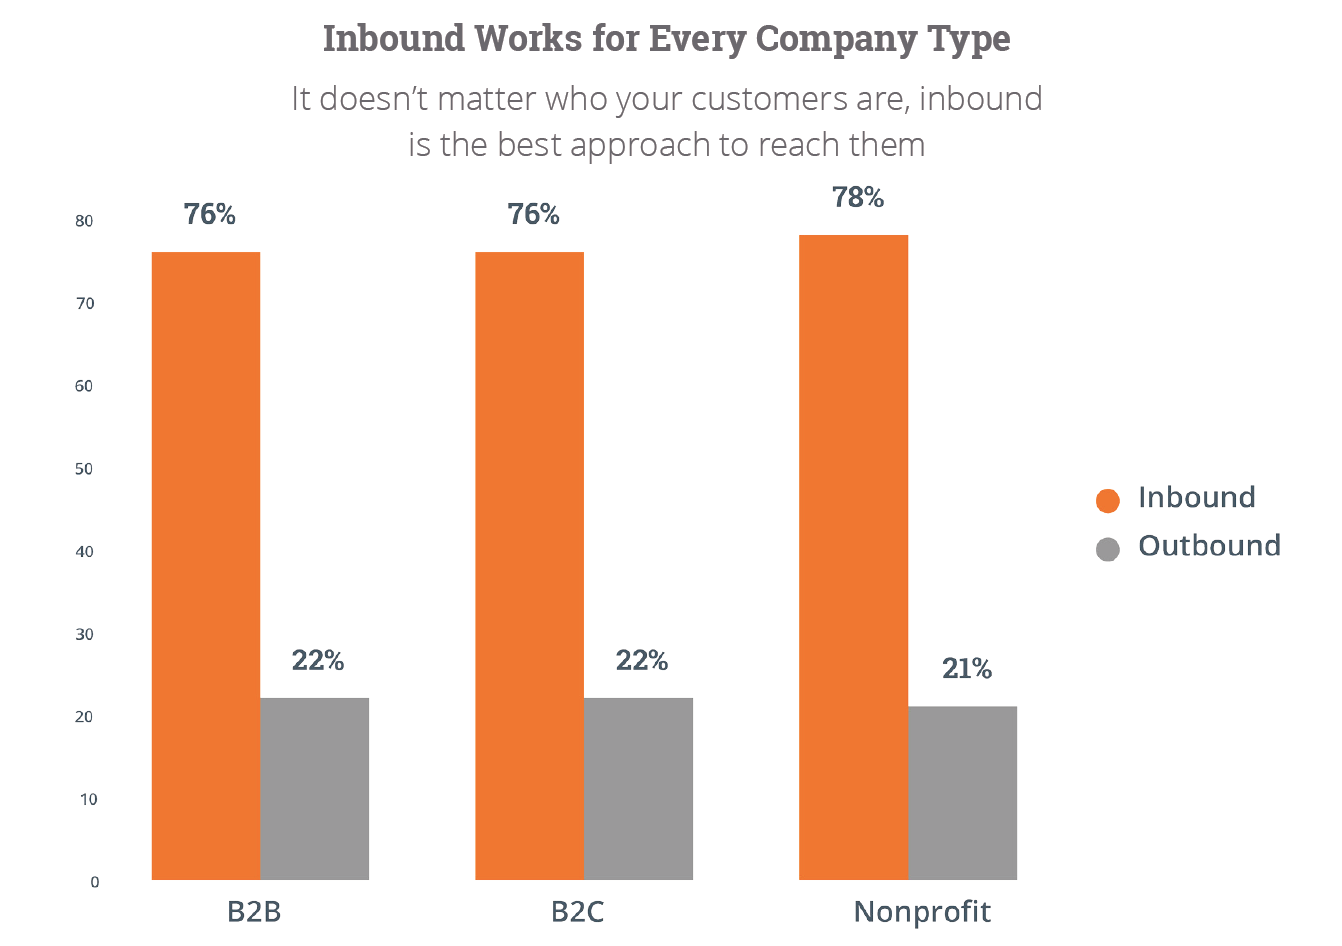 inbound-marketing-works-for-b2b-b2c-and-non-profits.png